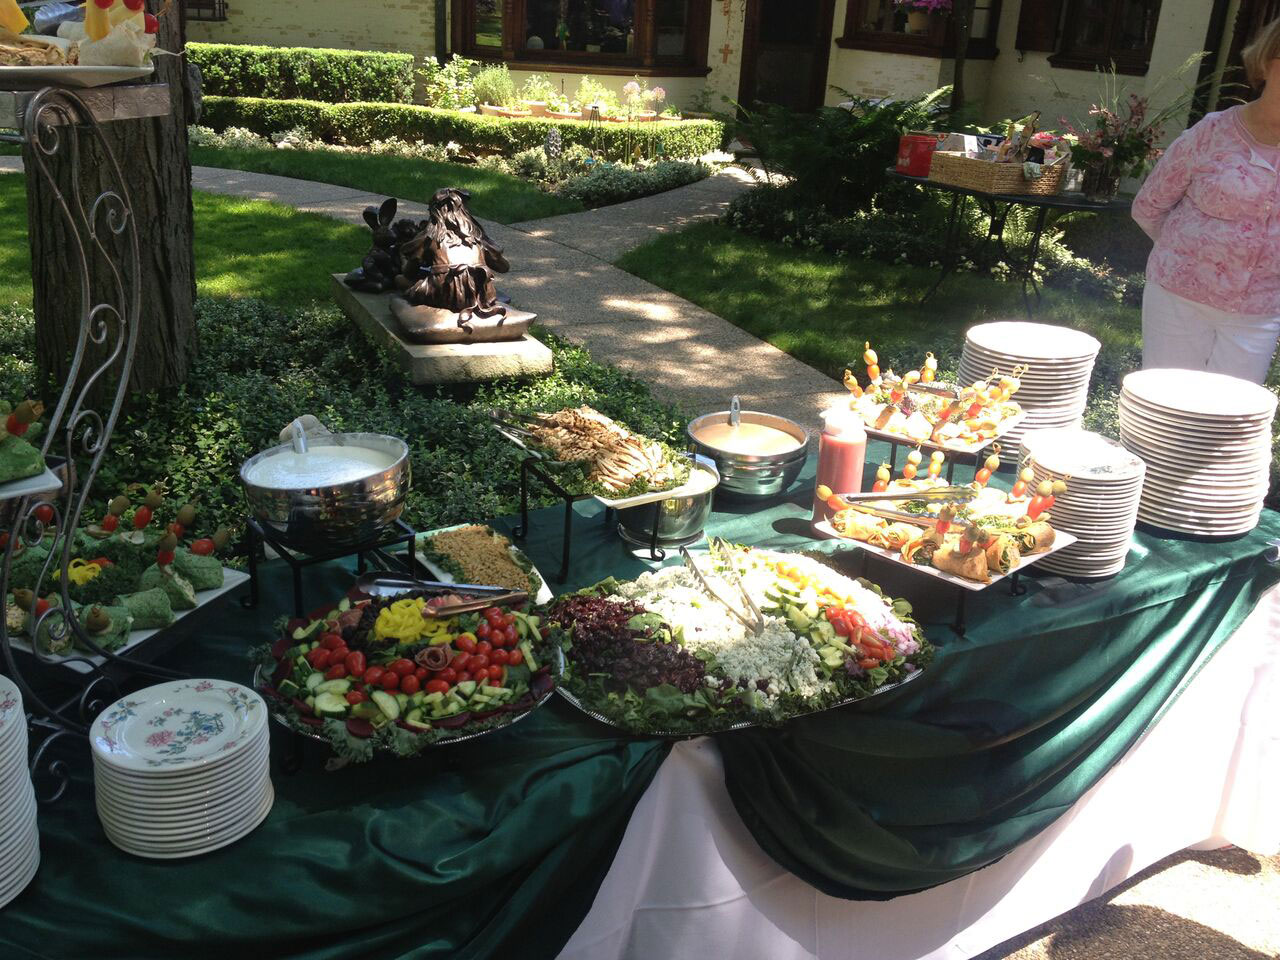 Let Us Cater Your Next Event! With Extensive Menus And Specialties, We Will  Customize To Your Catering Needs, Making Your Event A Truly Festive  Occasion.